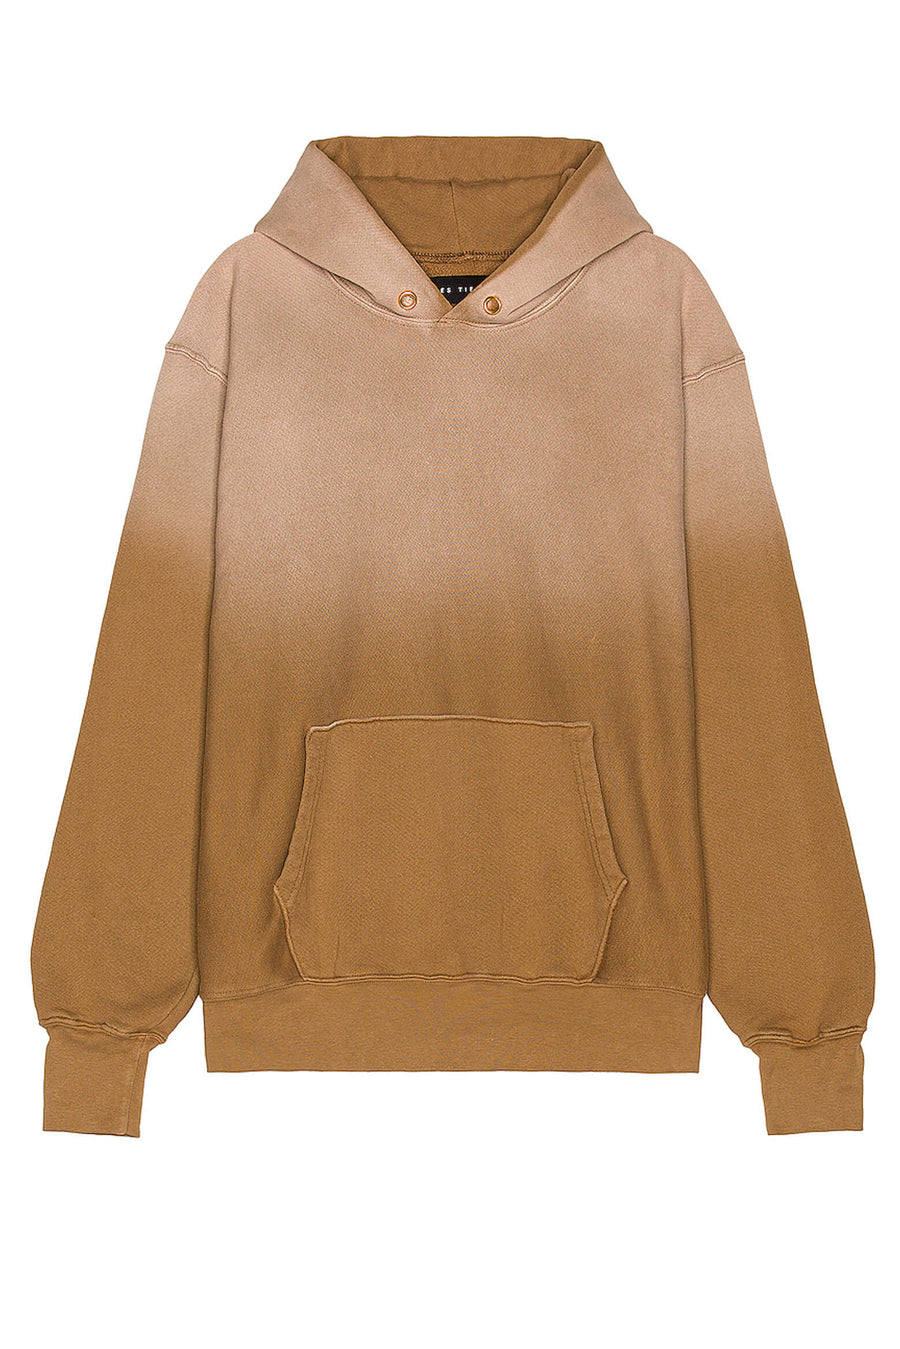 Les Tien Cropped Hoodie in Sand Ombre from The New Trend